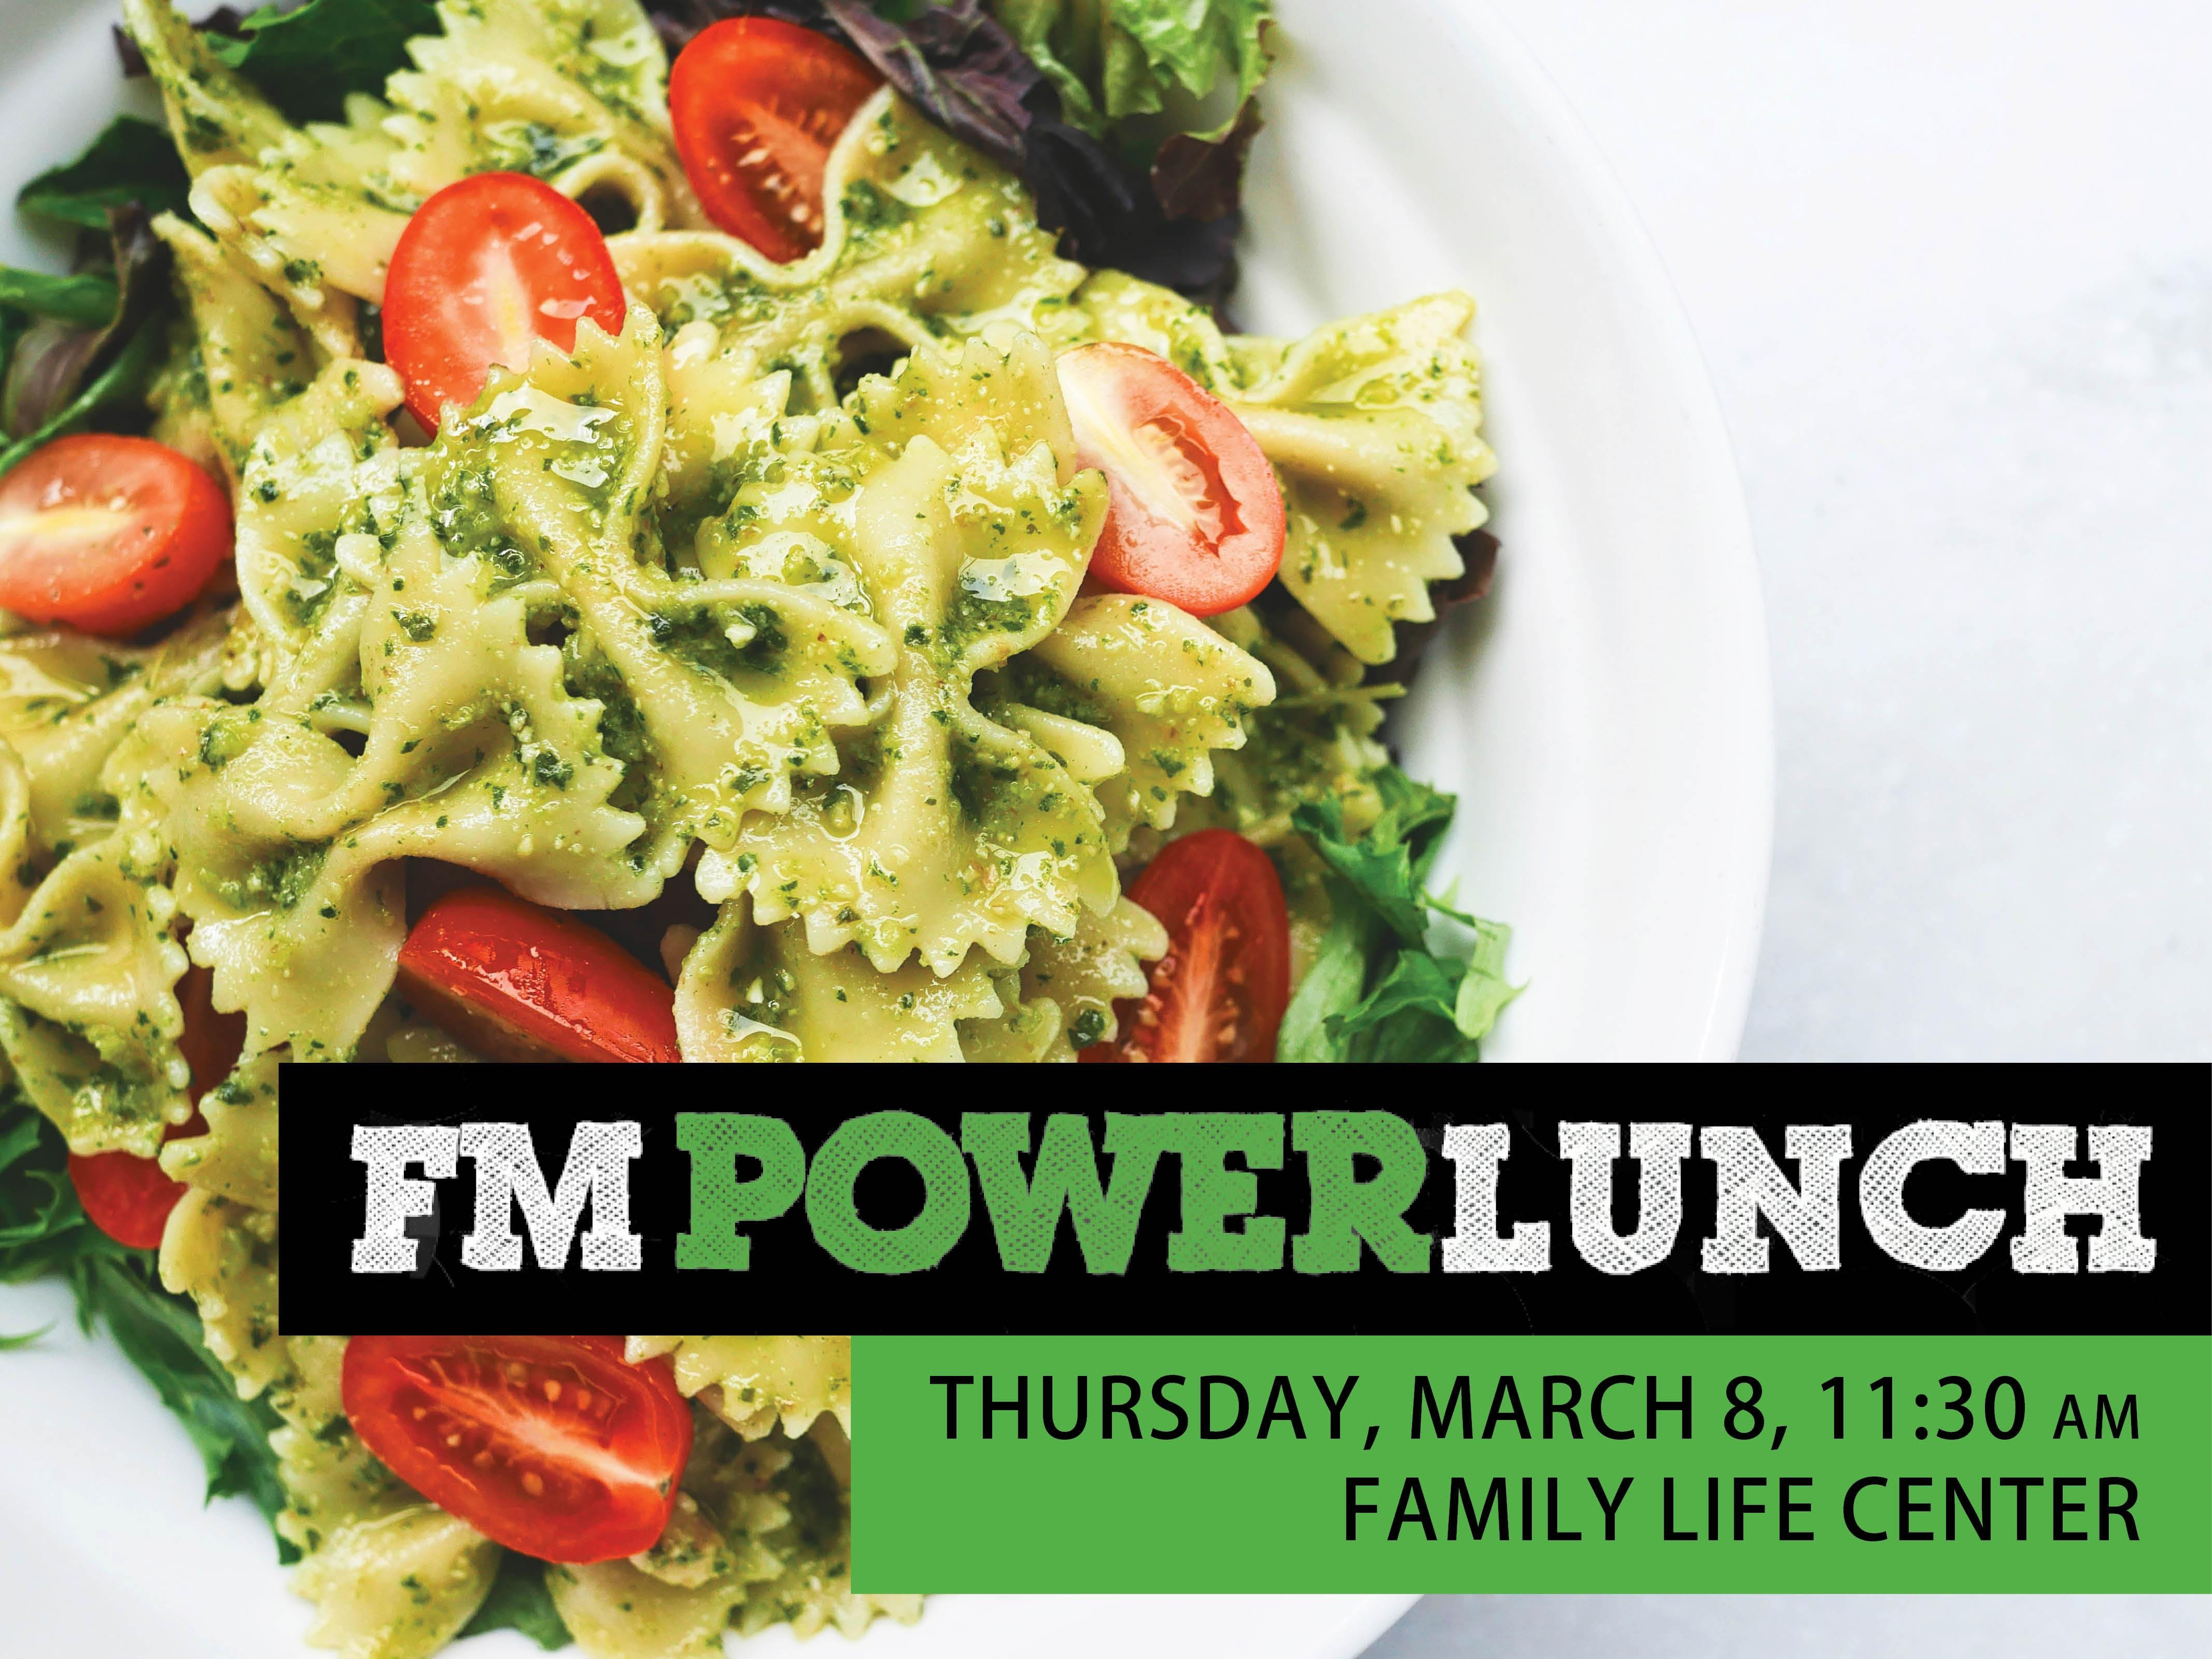 FM Power Lunch 2019-2020